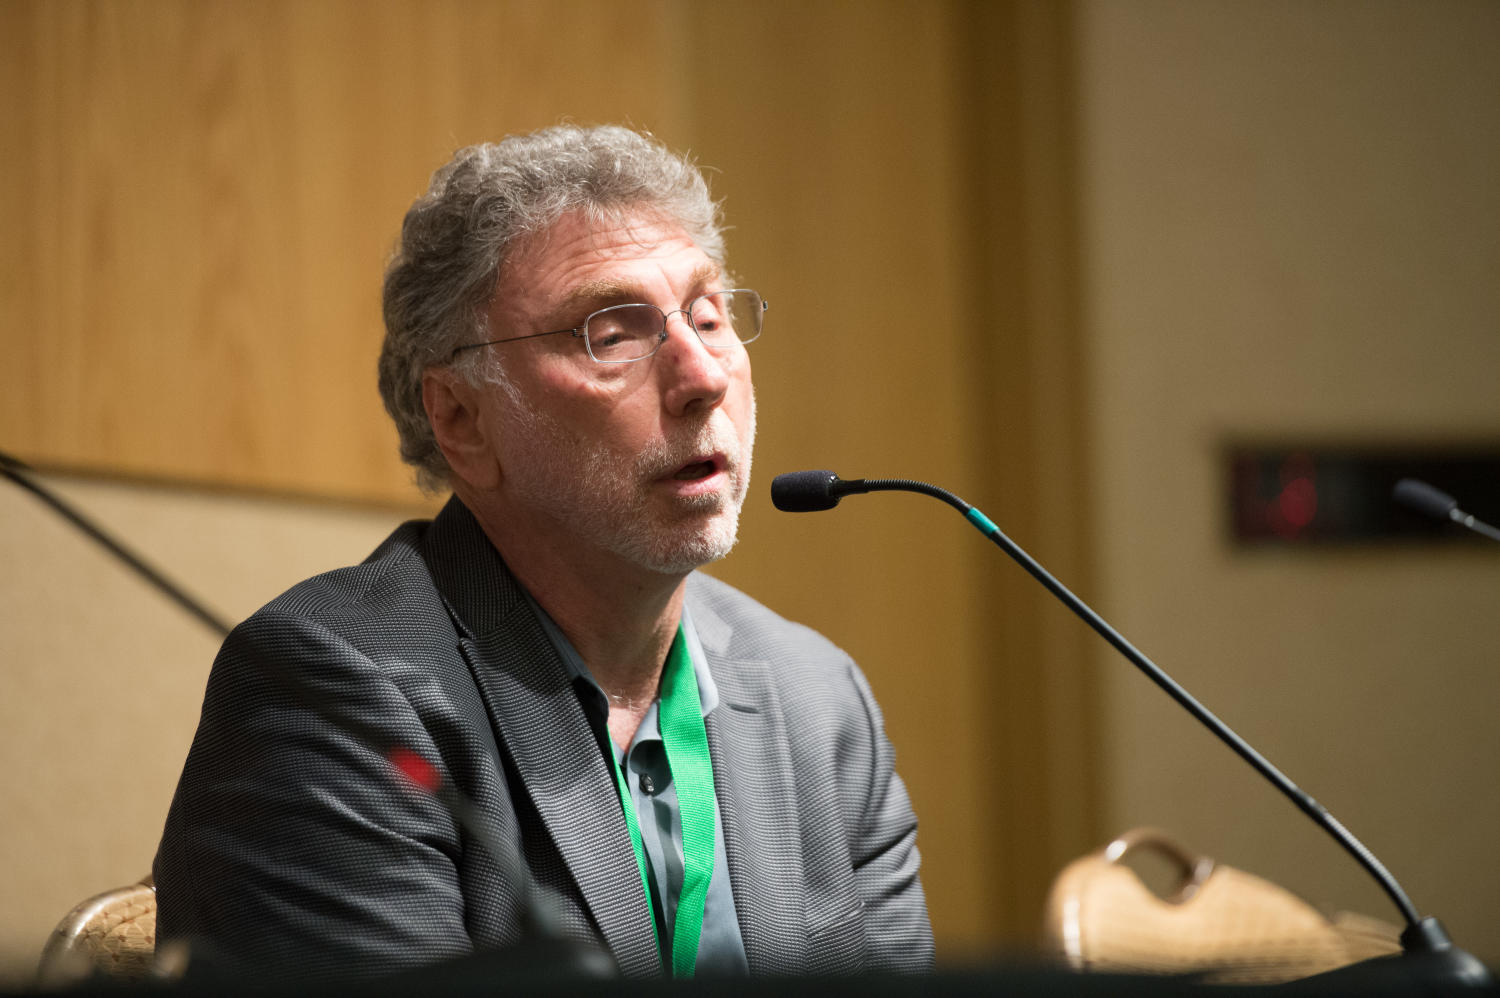 """[Marty Baron speaking during """"Spotlight On Winning Pulitzers"""" plenary], Photograph of Marty Baron speaking into a microphone during a plenary titled """"Spotlight On Winning Pulitzers - Confessions of an 11-Time Pulitzer Prize Winning Editor"""". The event was held as a part of the Mayborn Literary Nonfiction Conference at the Hilton DFW Lakes Executive Conference Center, Grapevine, TX.,"""